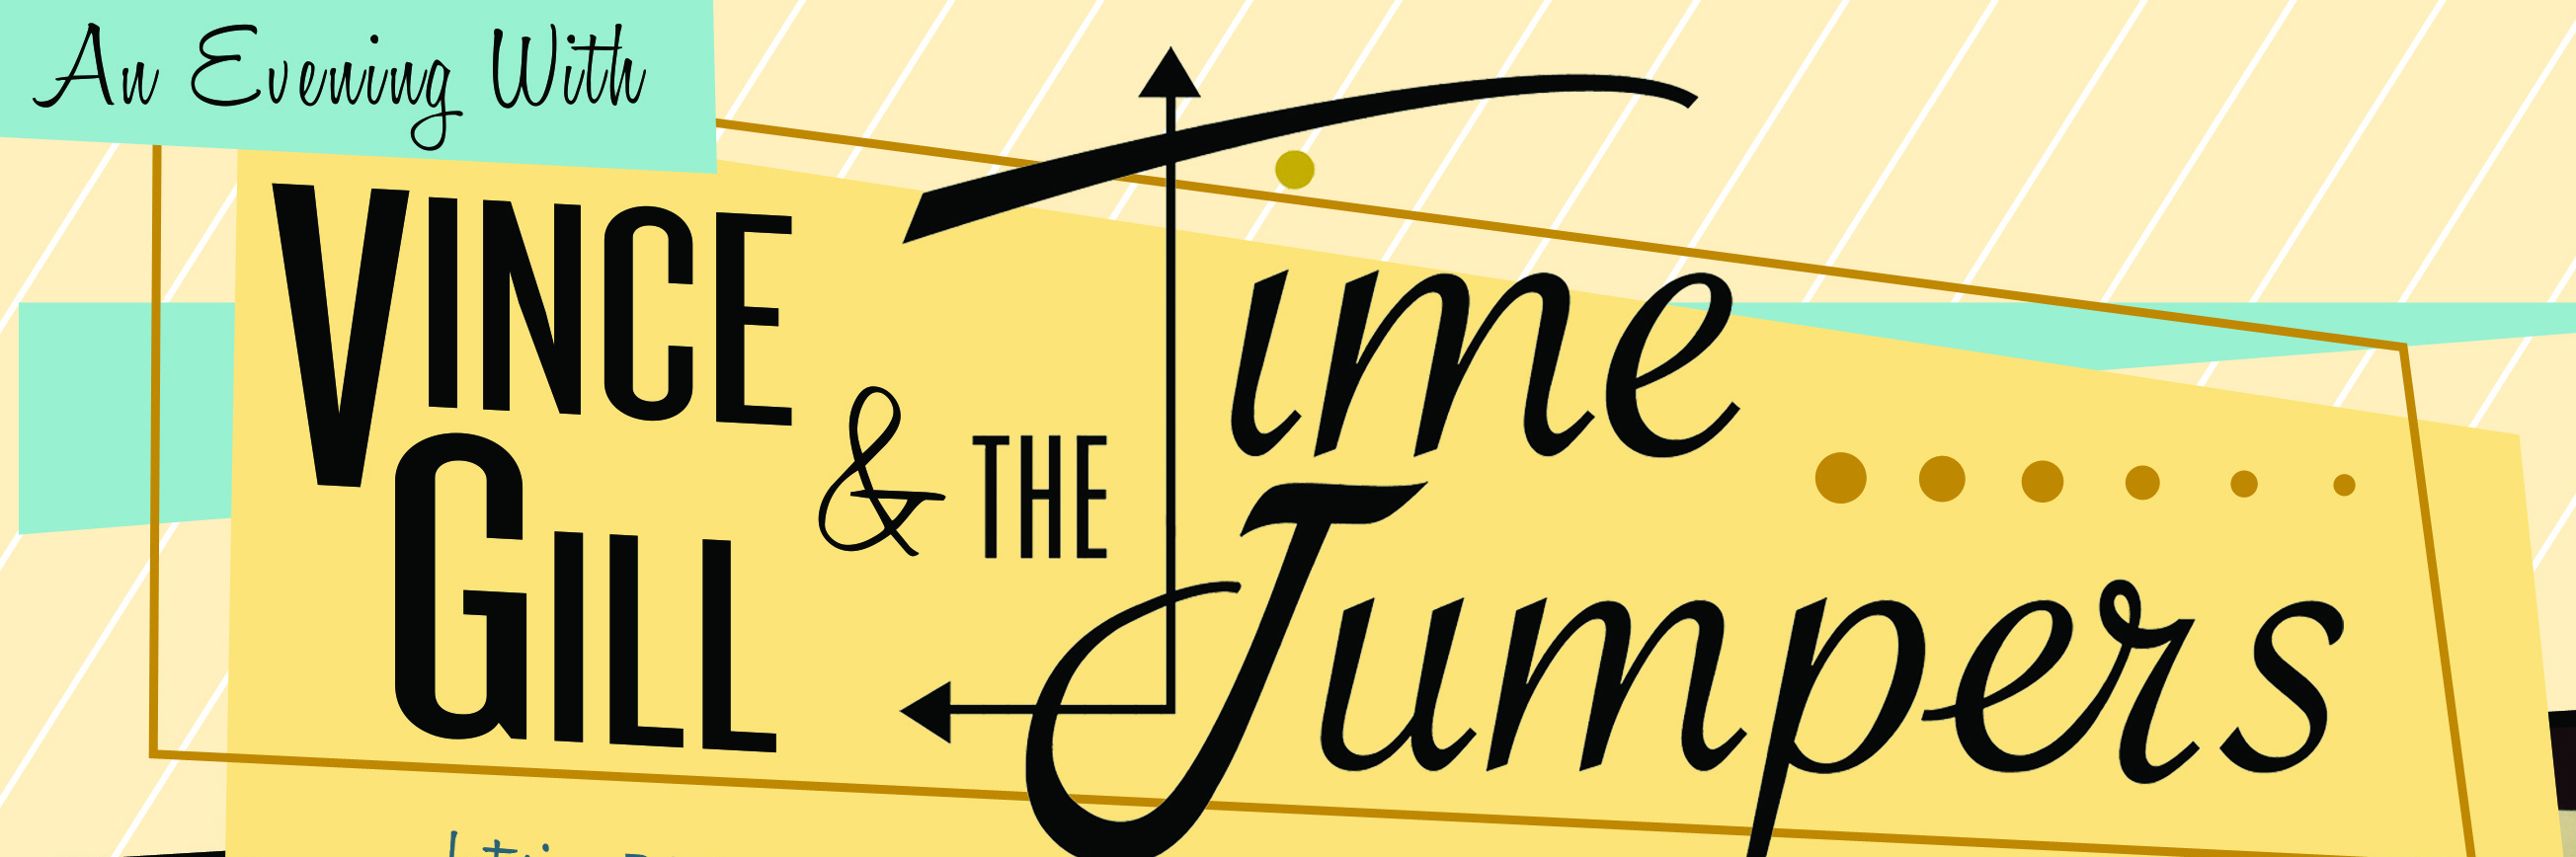 time jumpers thumbnail.jpg